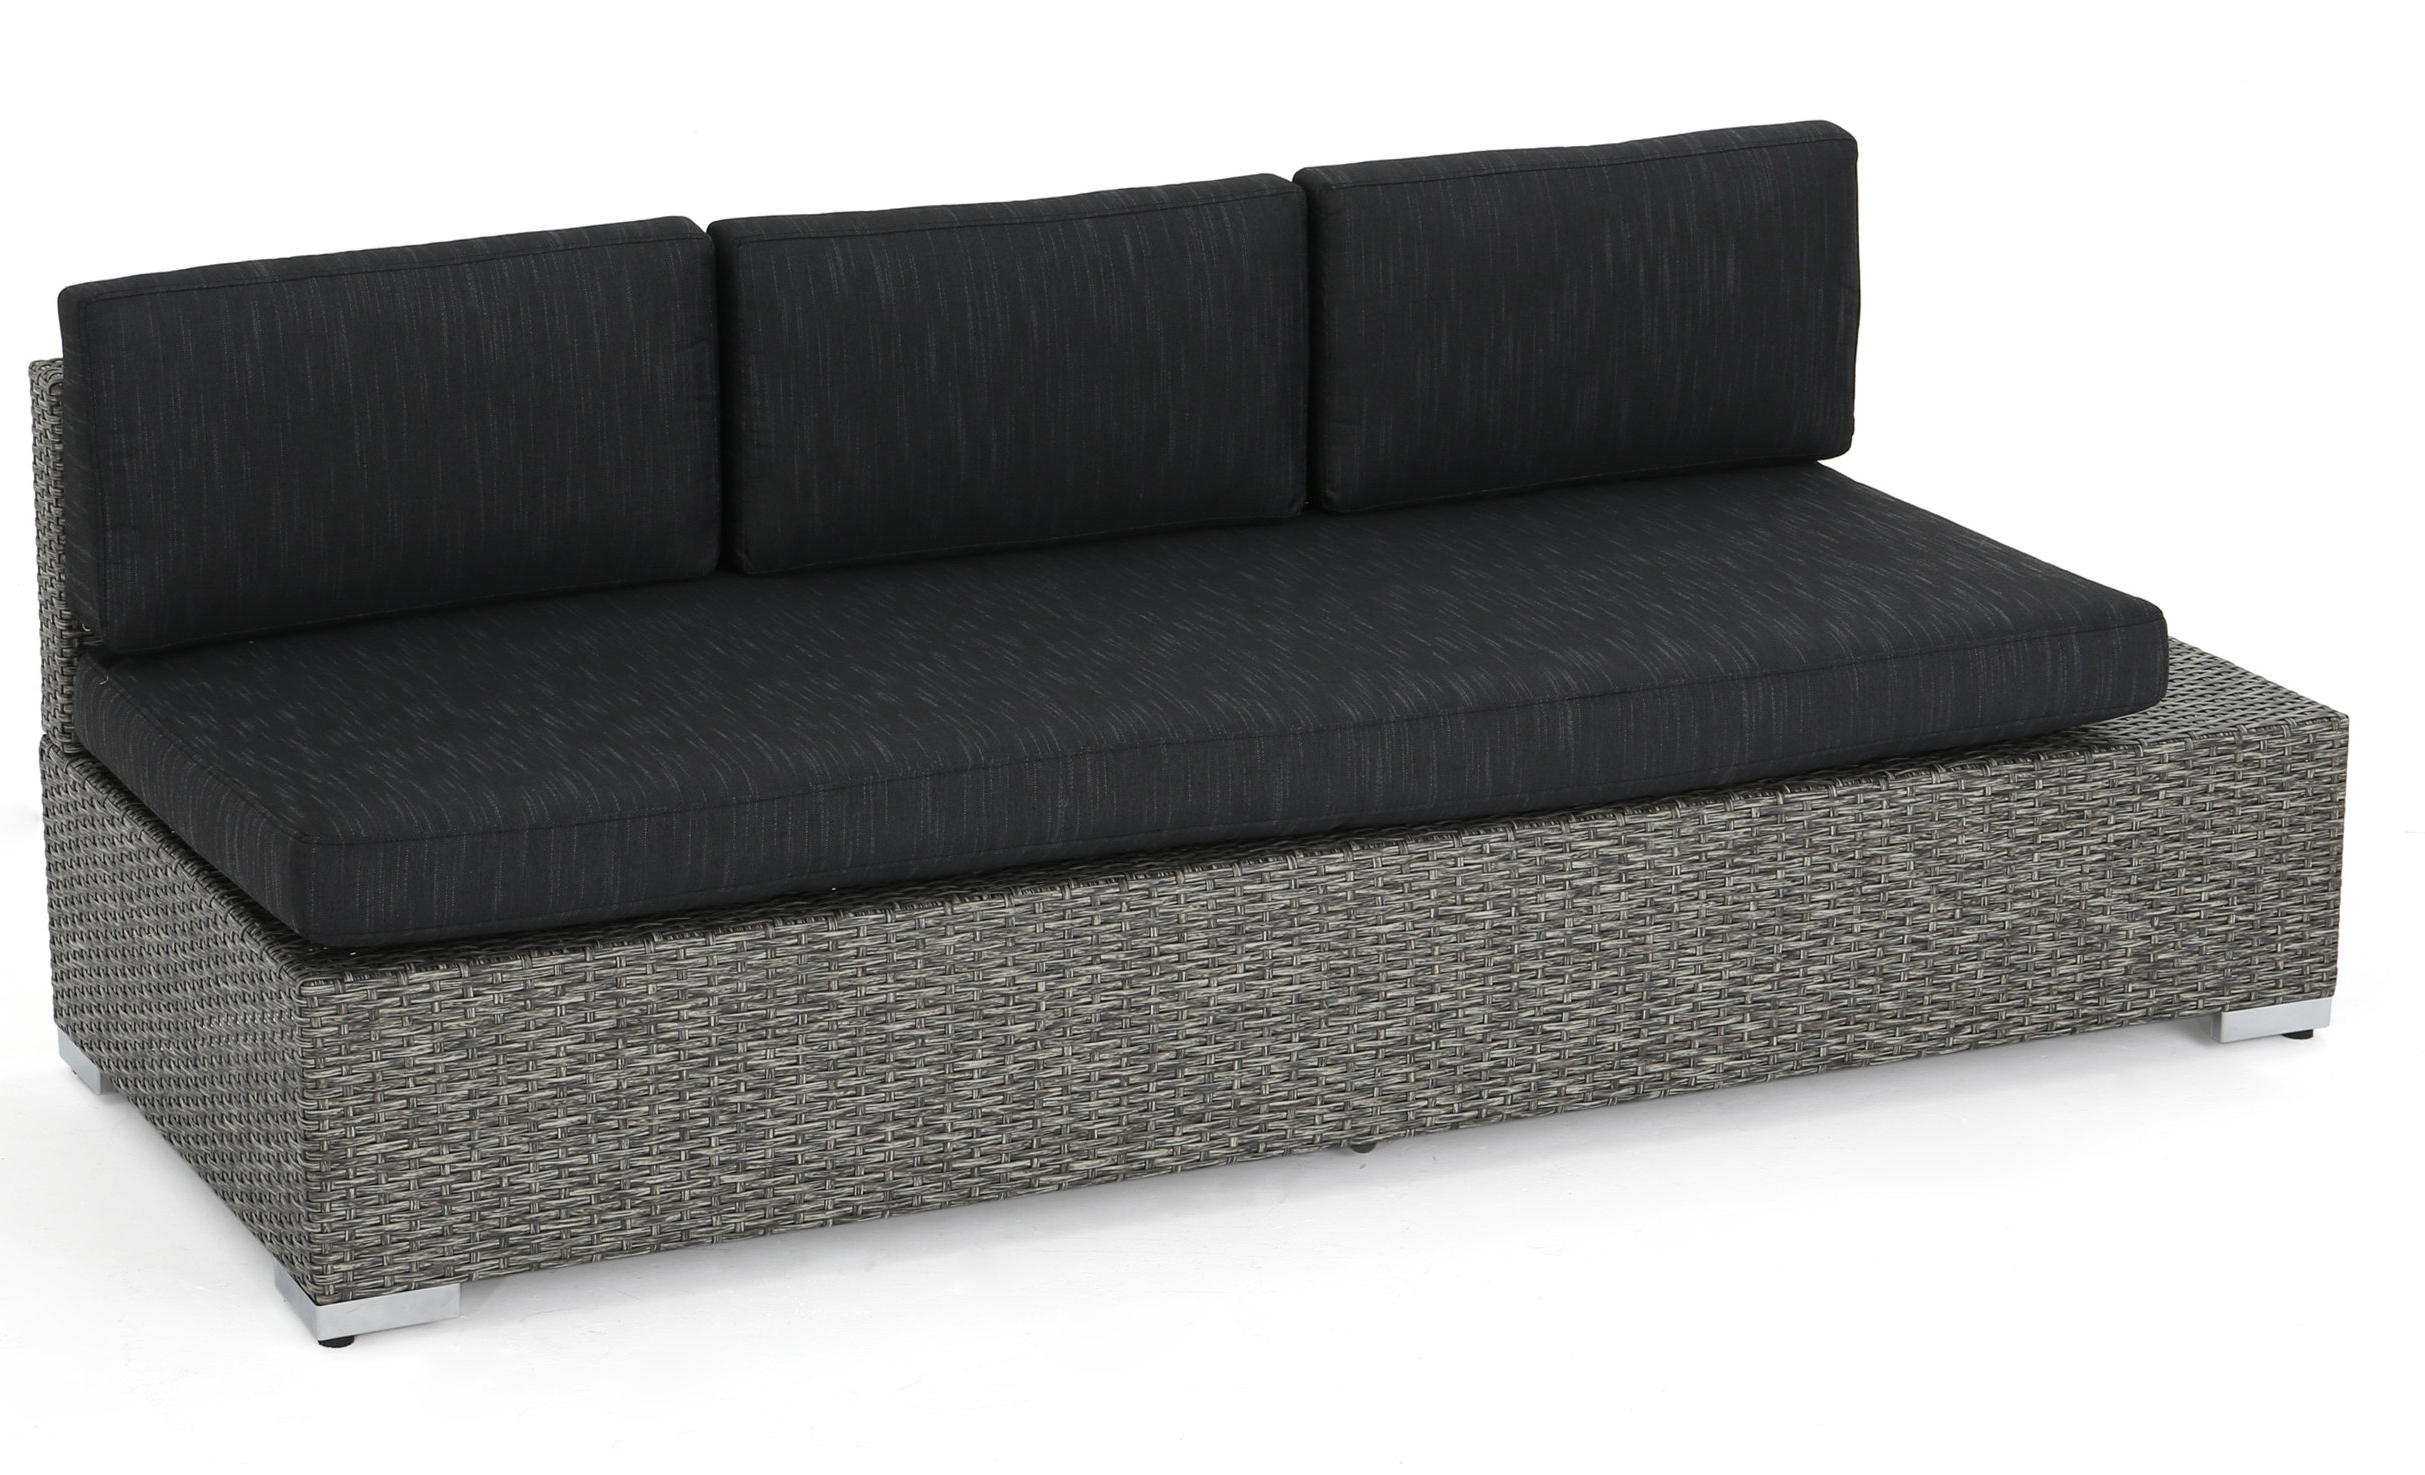 Favorite Furst Patio Sofa With Cushion Within Belton Patio Sofas With Cushions (View 11 of 25)